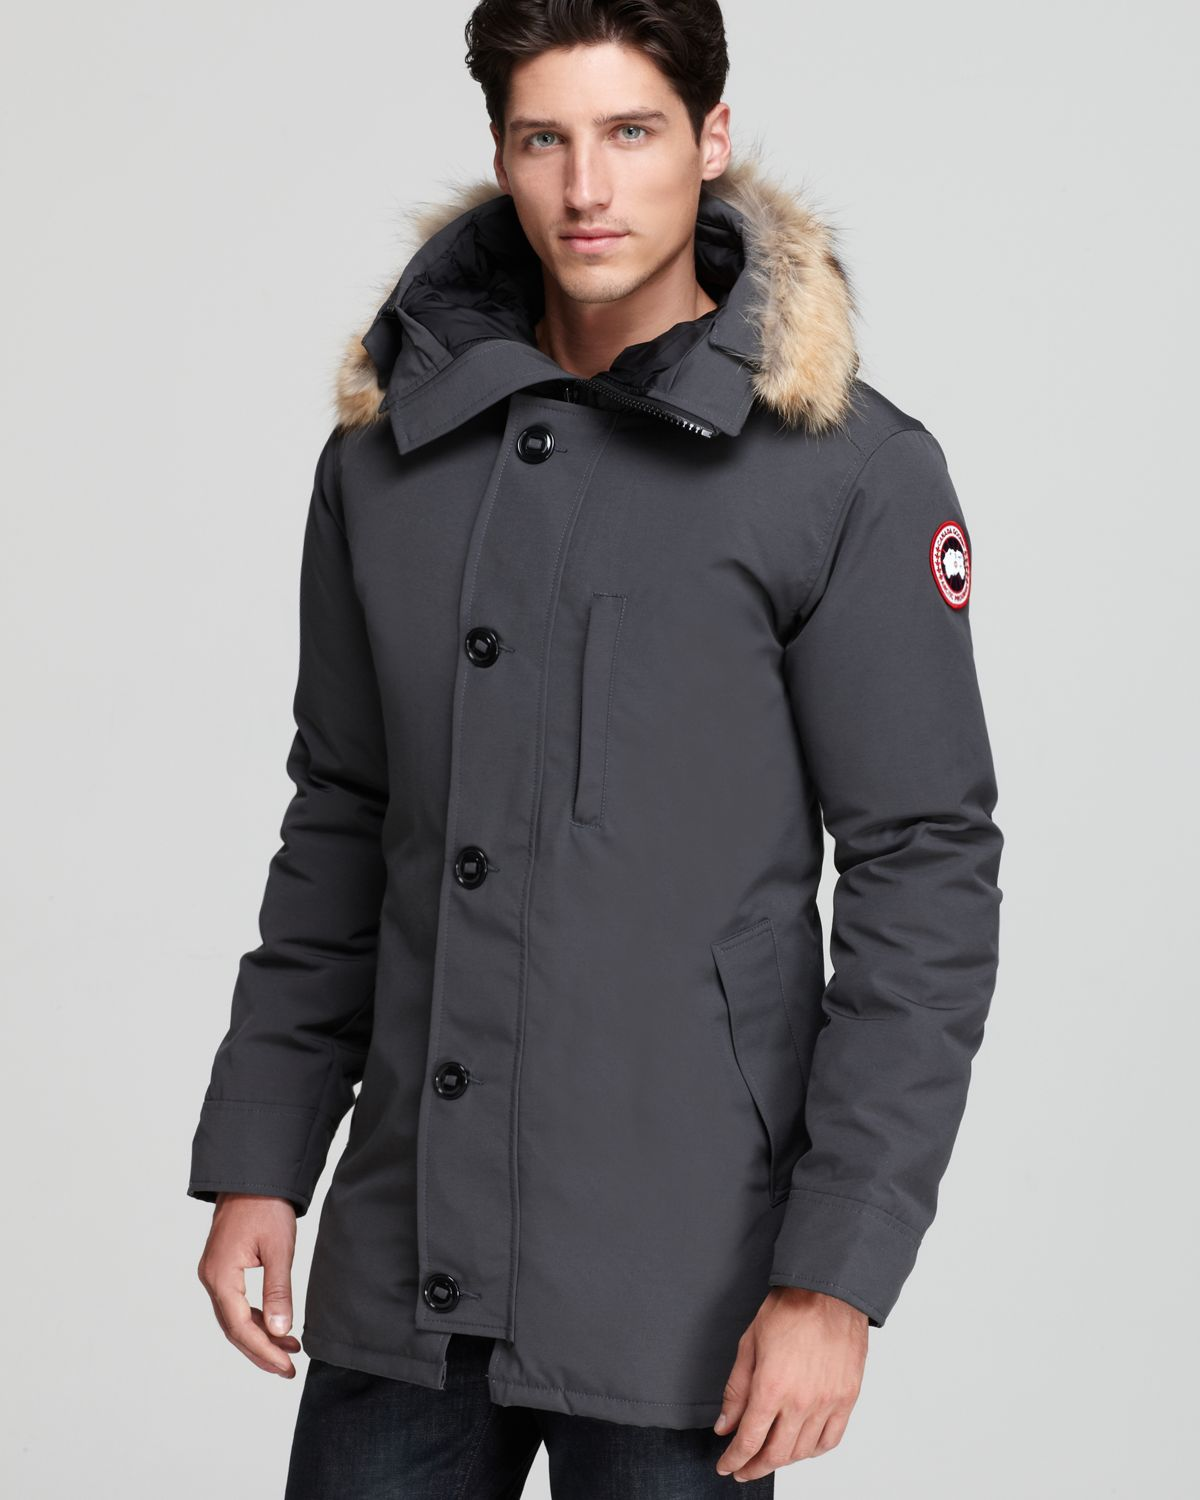 Canada Goose kensington parka outlet authentic - Canada goose Chateau Parka with Fur Hood in Gray for Men (Graphite ...